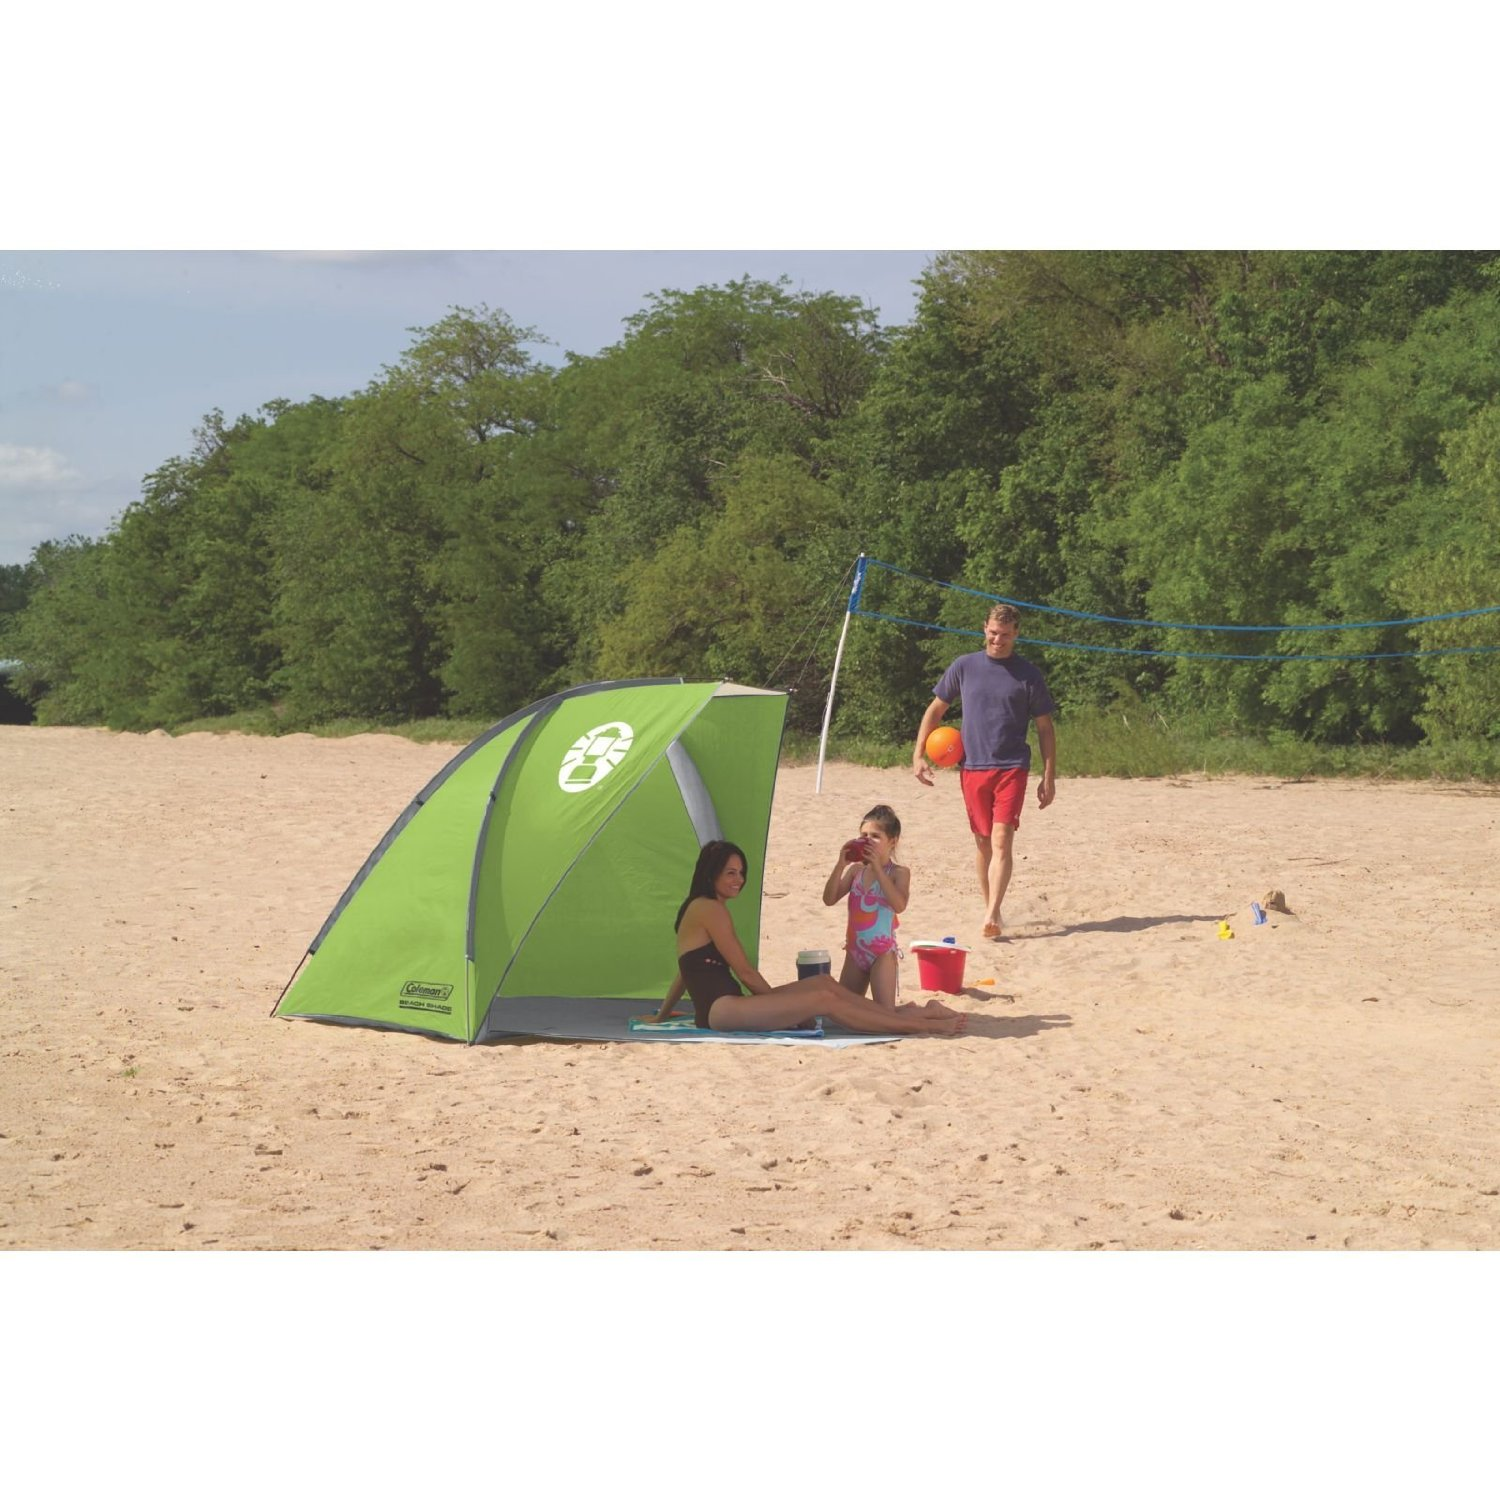 Best Baby Beach Tent For A Summer Vacation 4 To Protect Your Baby